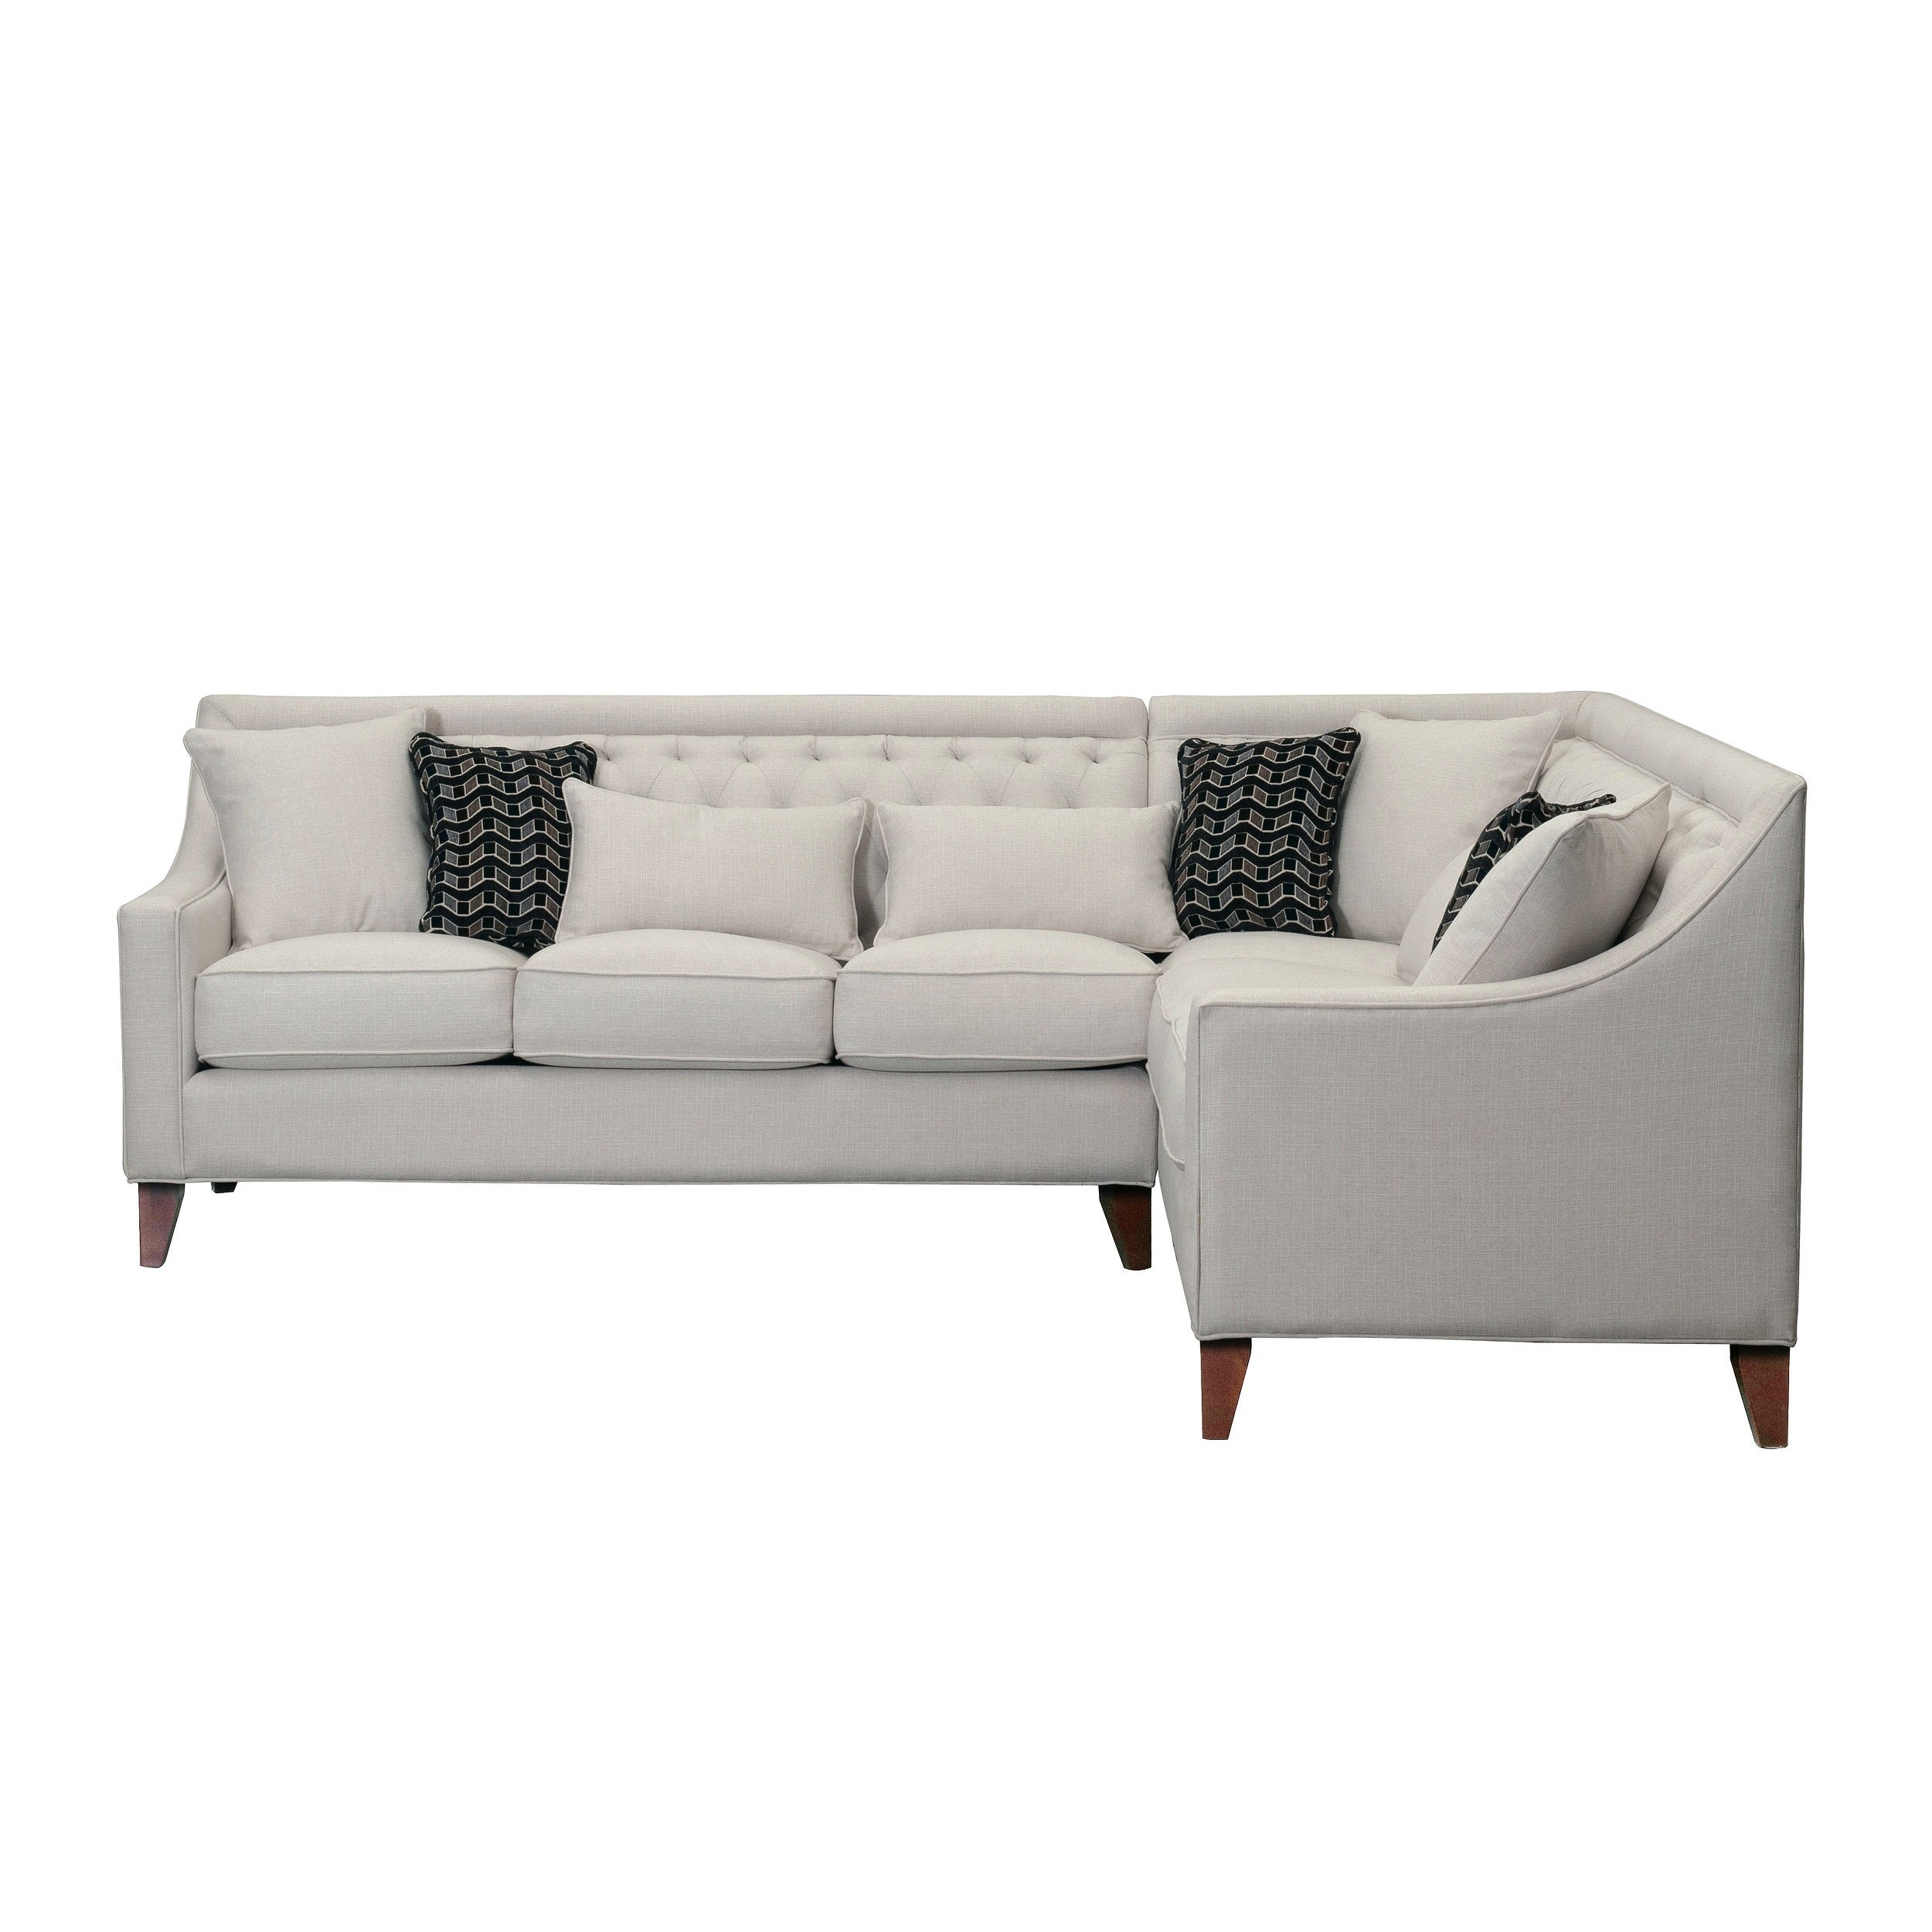 chic home fulla linen tufted back rest modern contemporary right